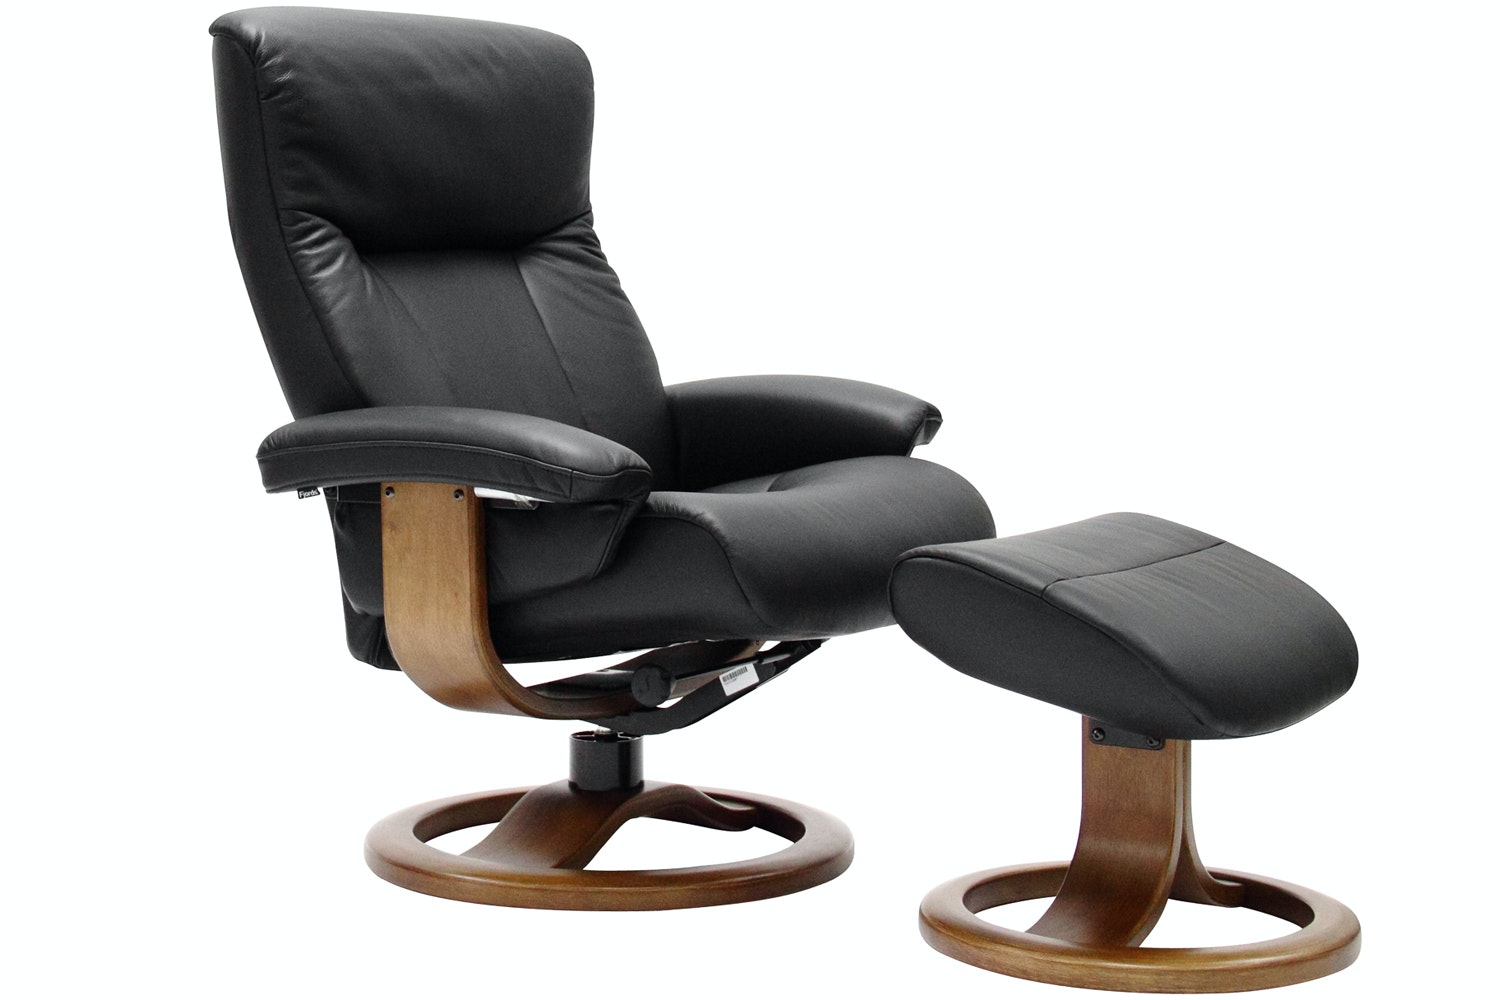 Rhine Chair with Stool | Black Leather with Oak Base